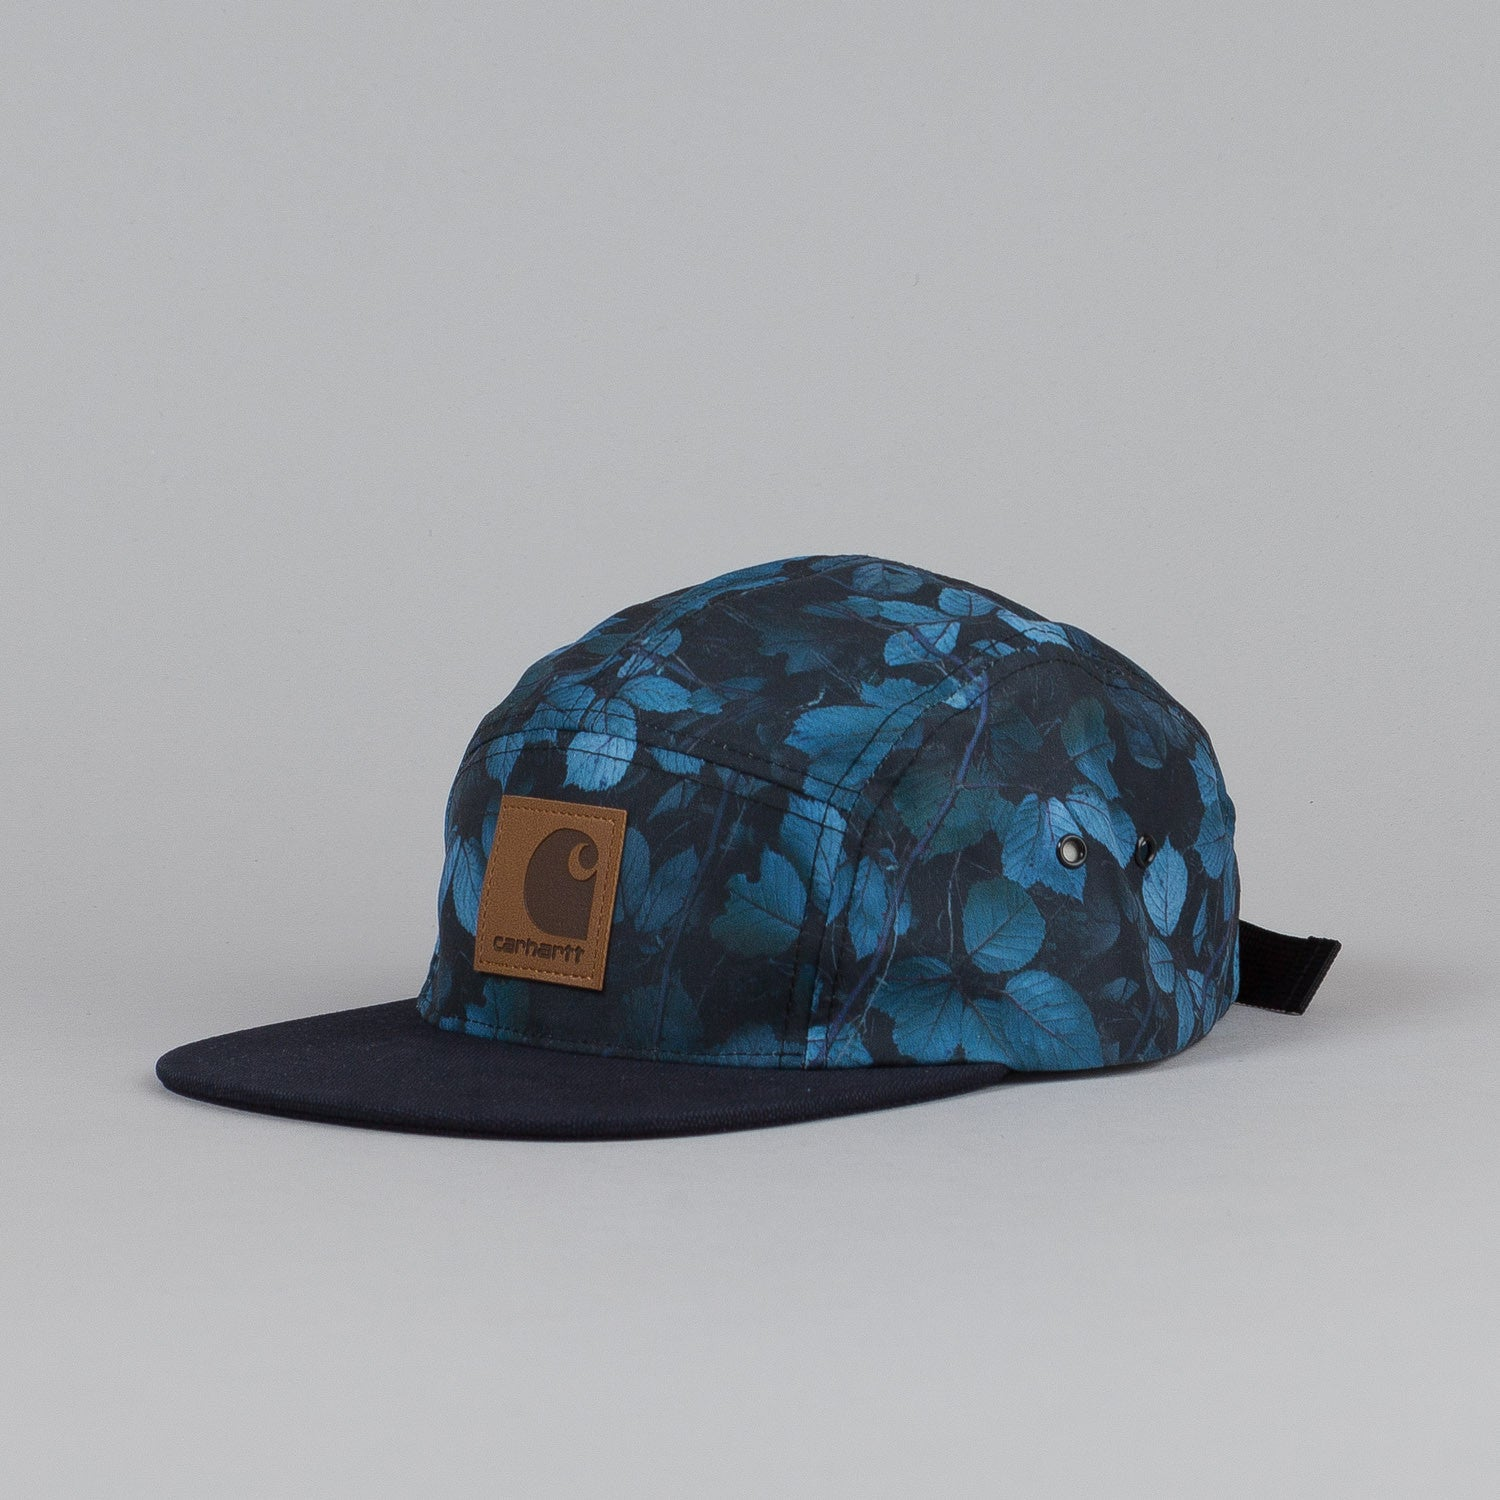 Carhartt Night Starter Cap Night Print / Monsoon